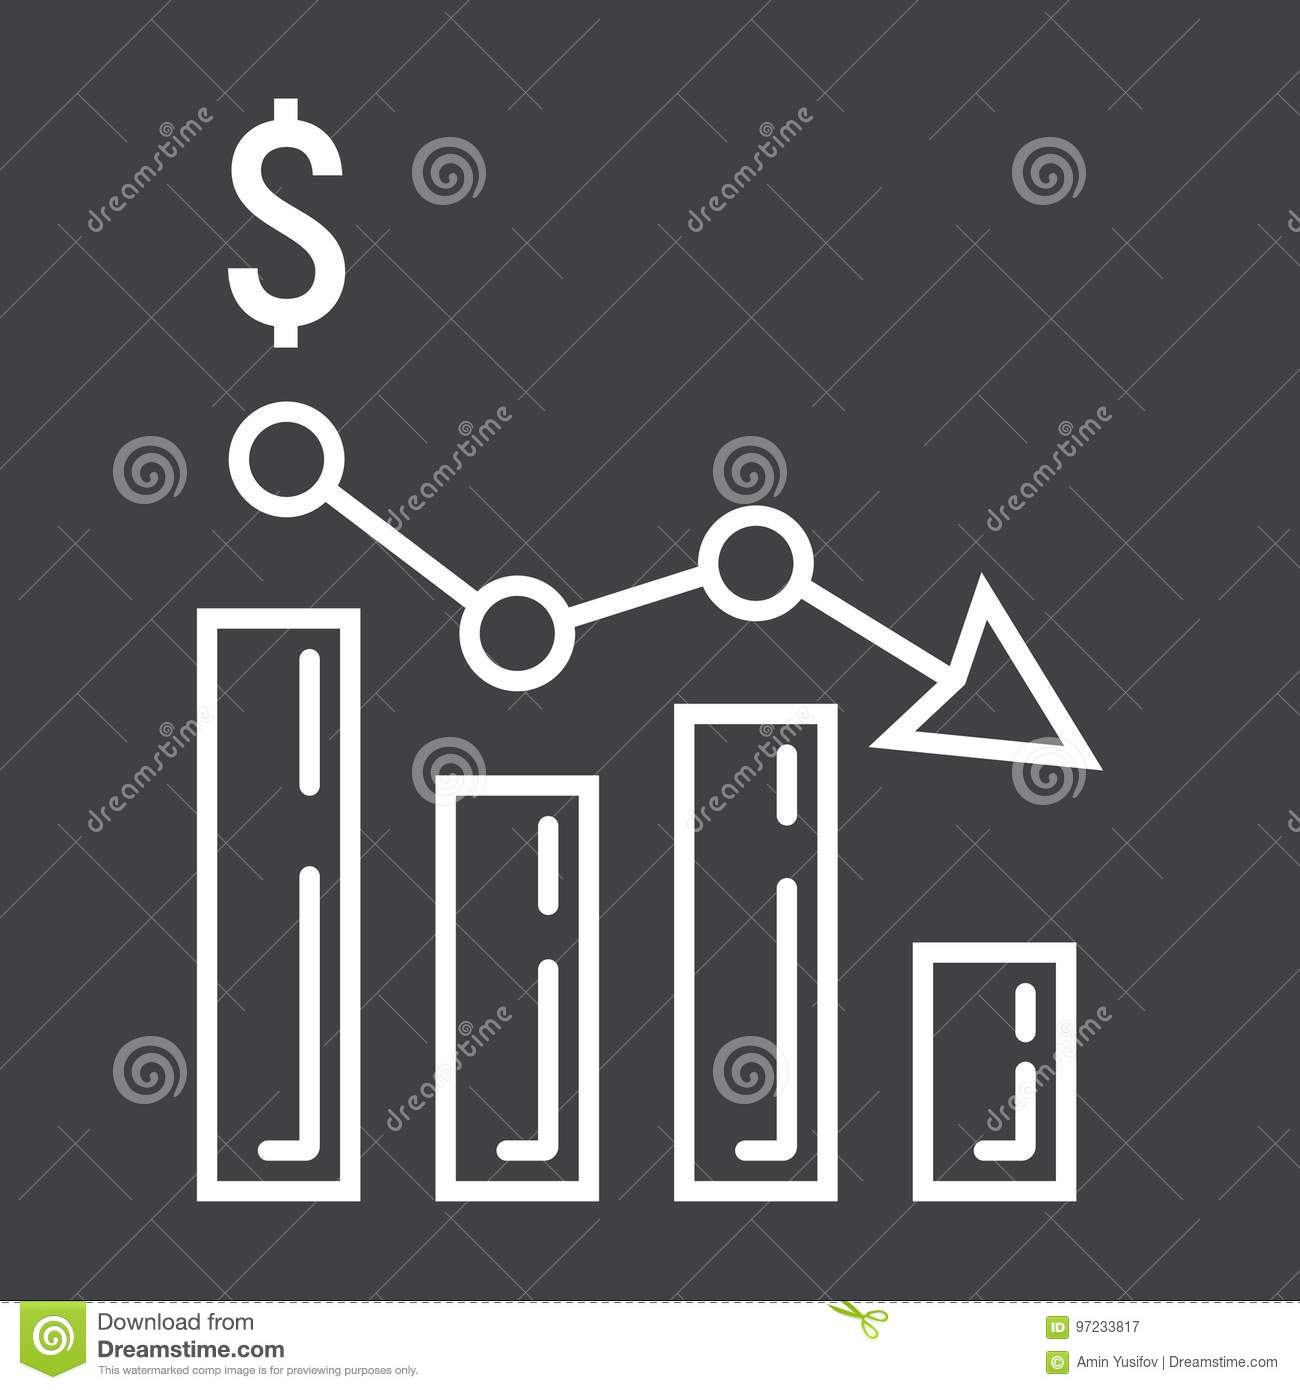 Declining graph line icon, business and finance